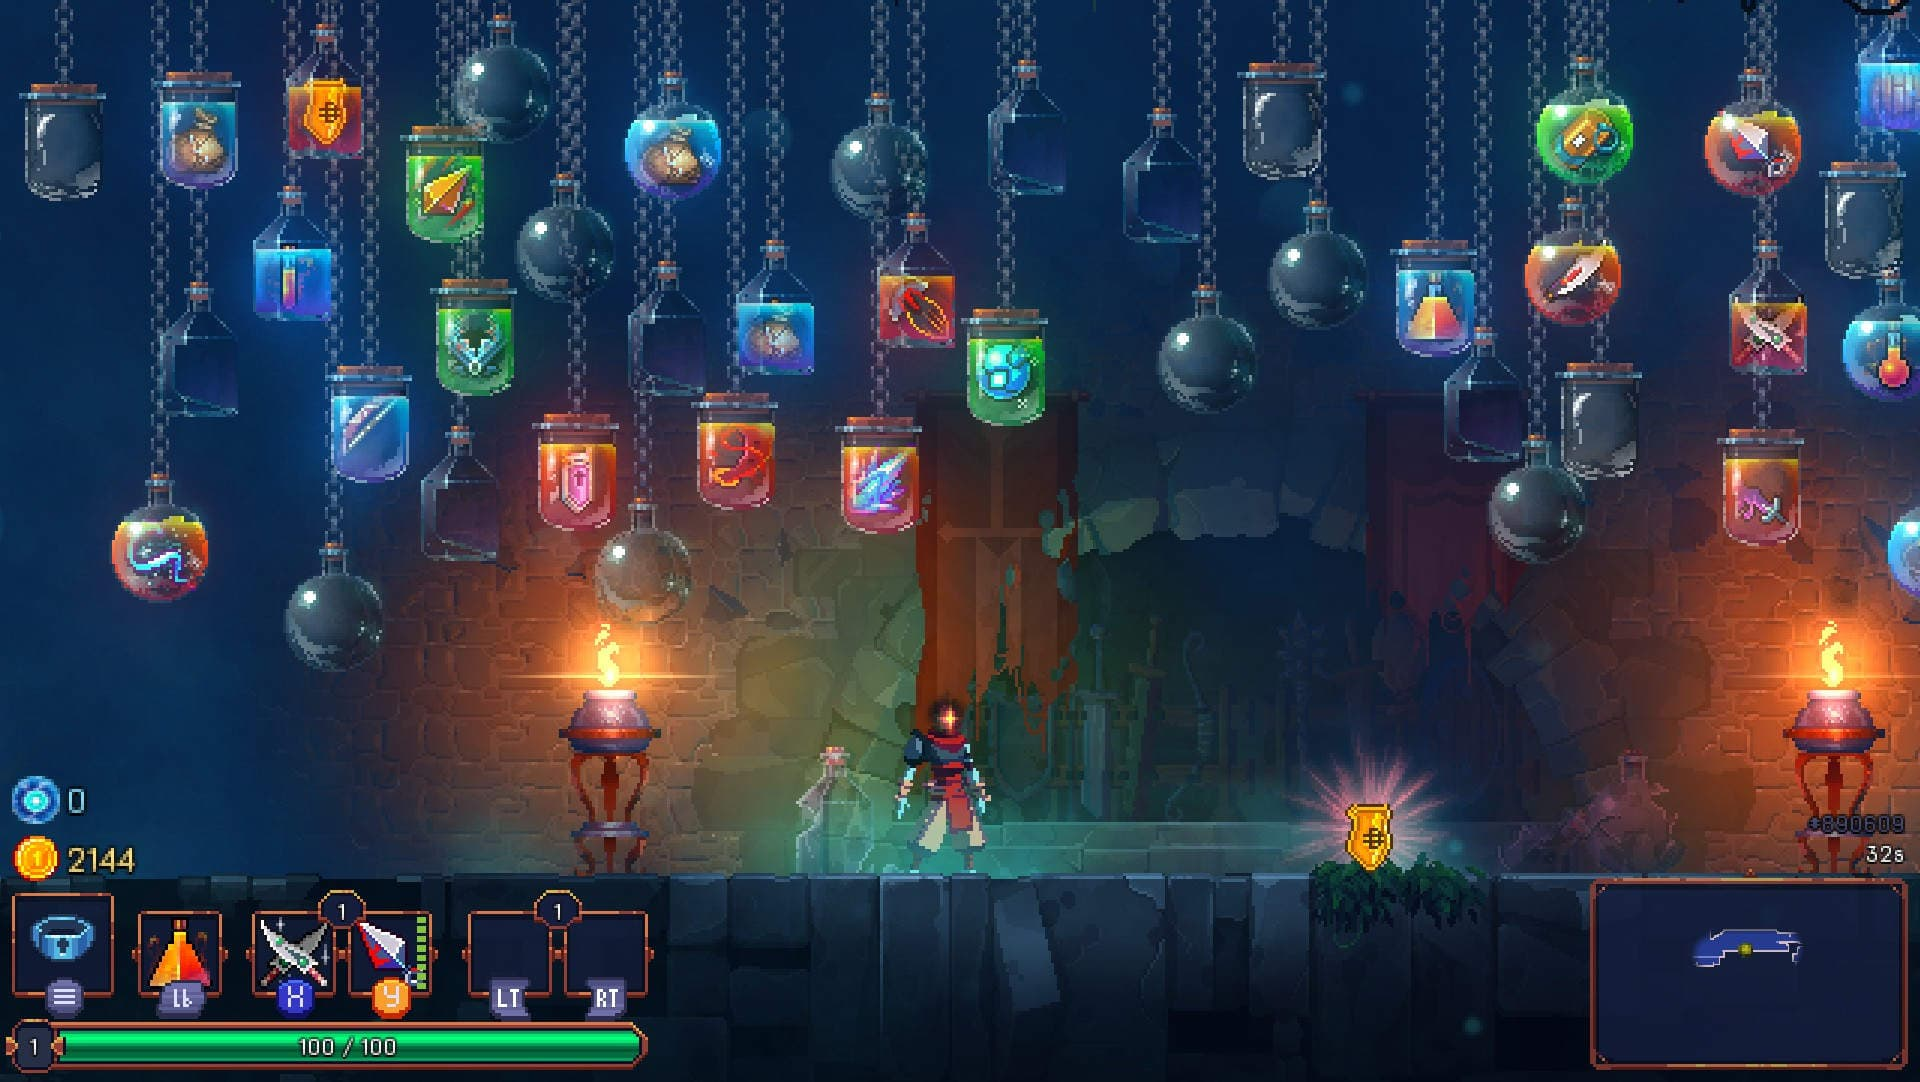 NT Live on Twitch: Dead Cells